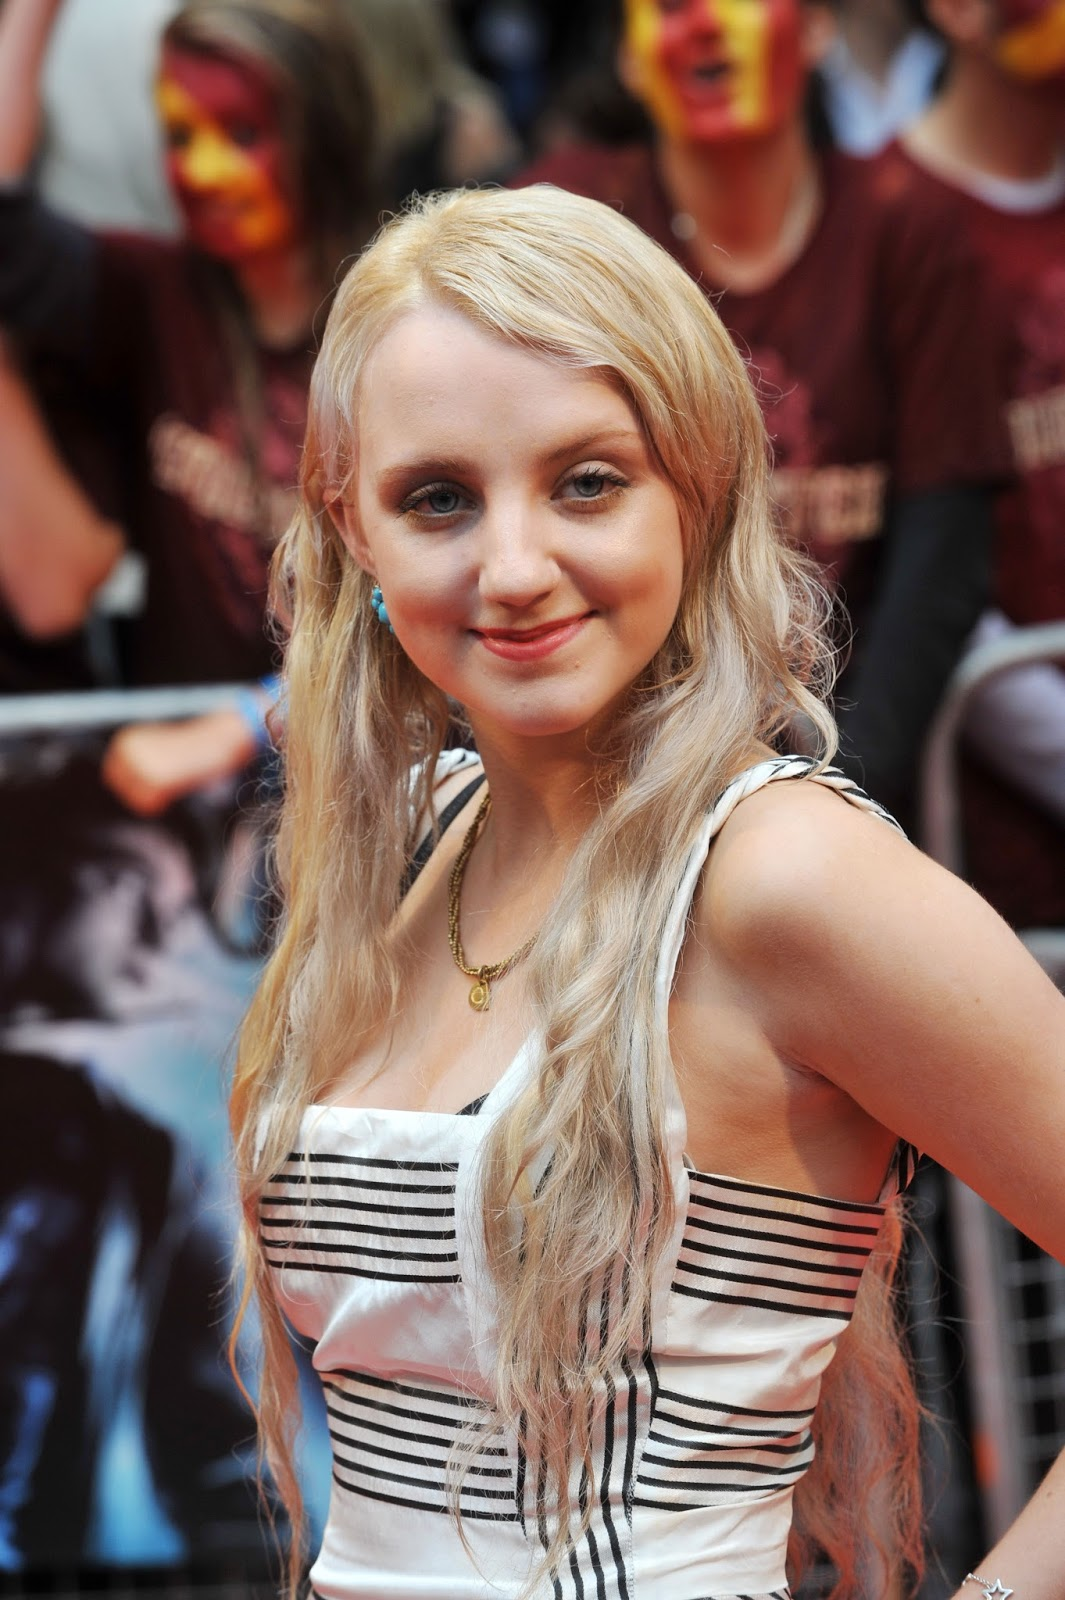 Cleavage Evanna Lynch nude (47 foto and video), Ass, Paparazzi, Feet, braless 2006